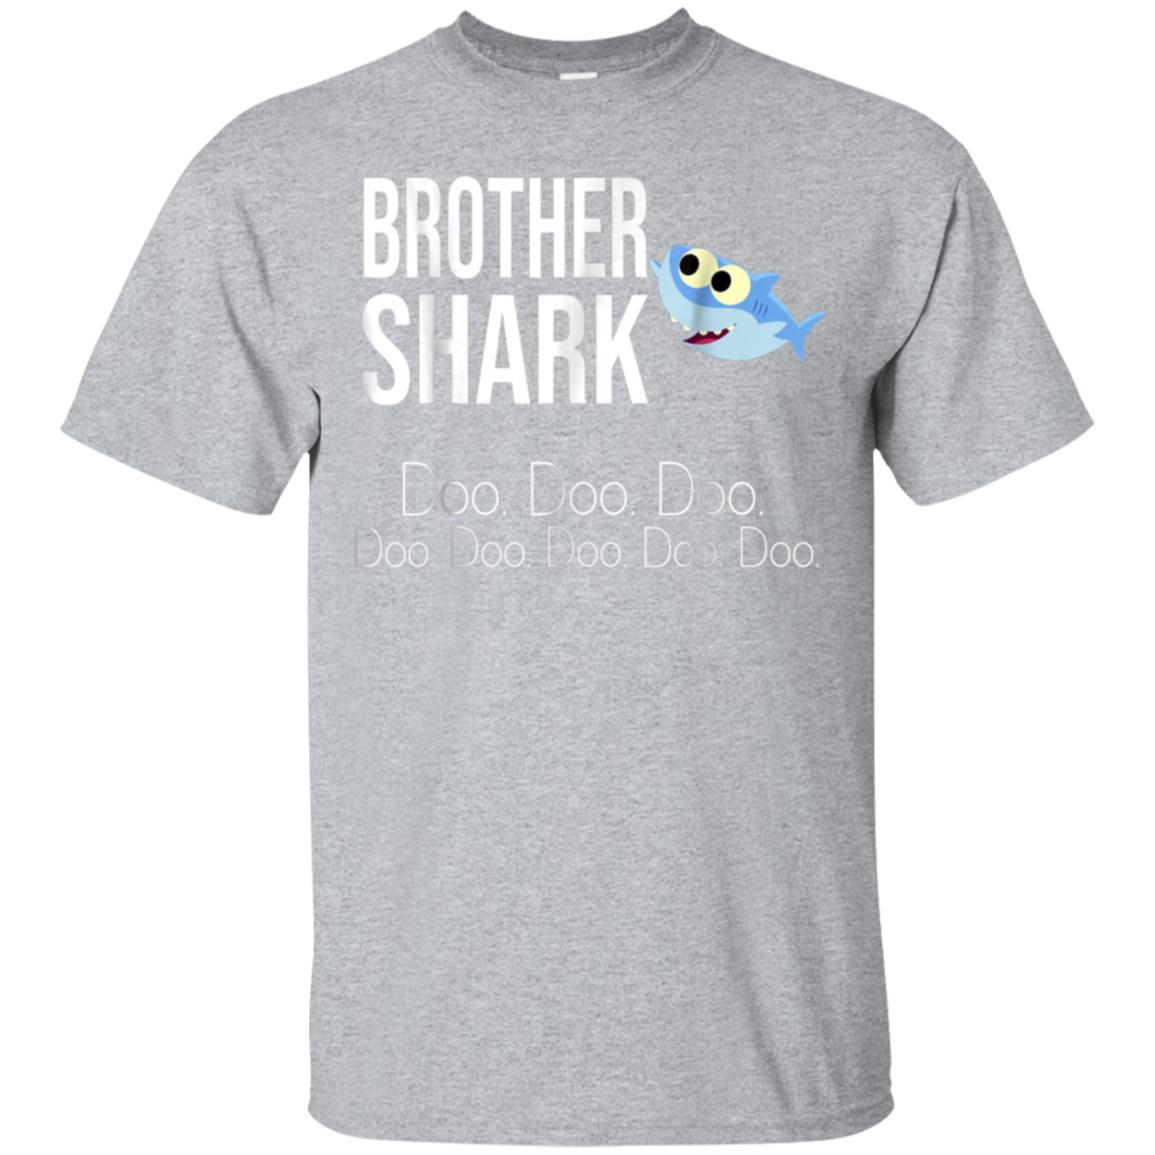 Brother Shark Baby Mommy Daddy Matching Family T-Shirt 99promocode